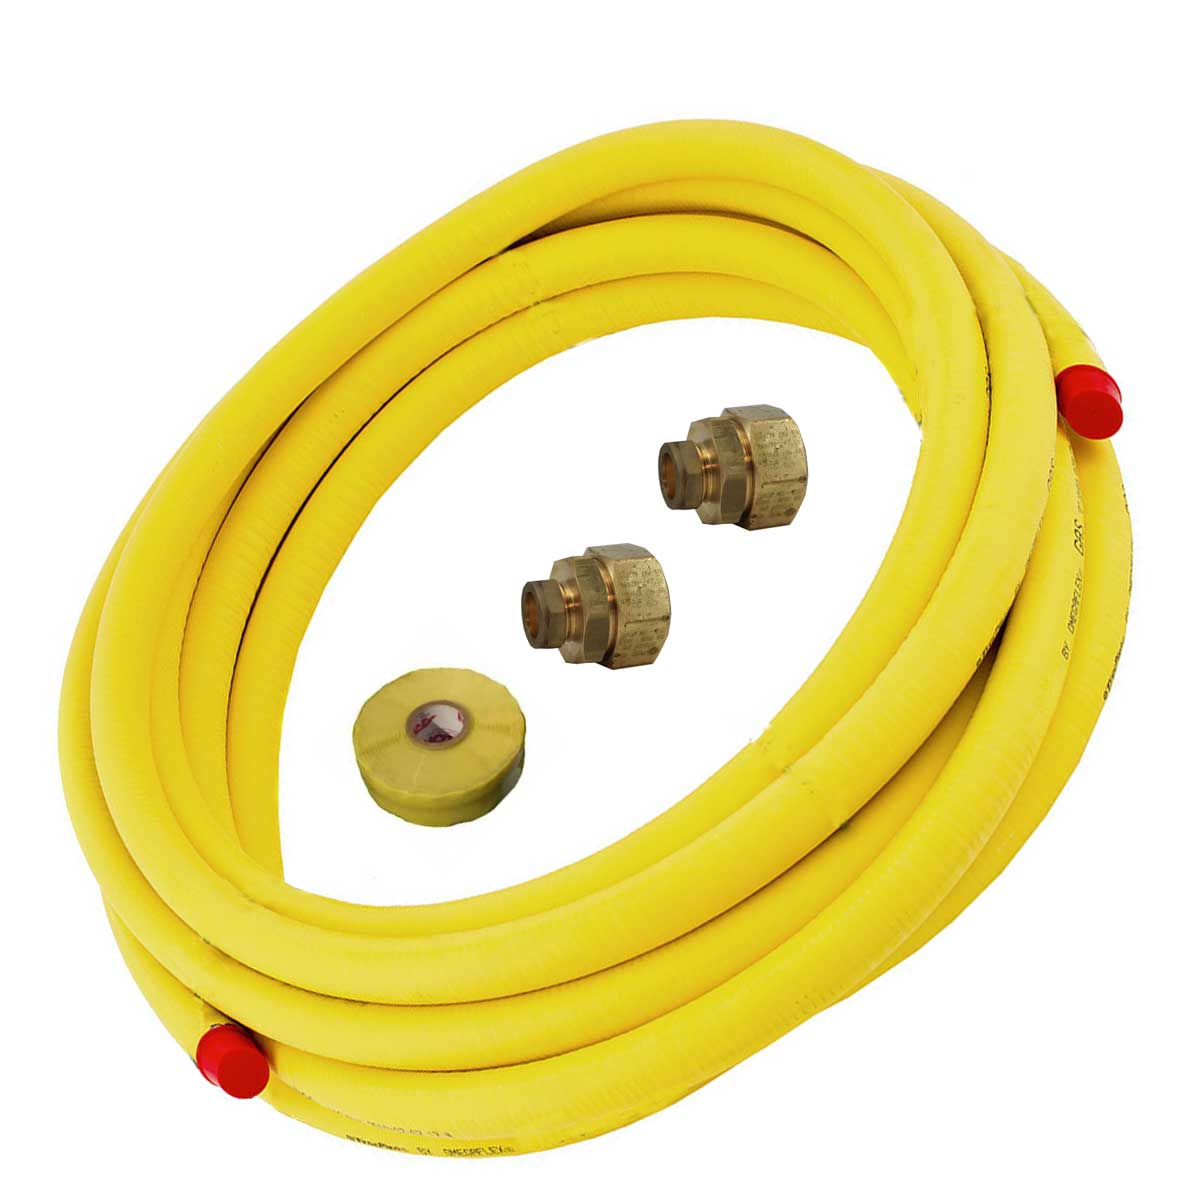 TracPipe 10m Flexible Gas Pipe Fittings and Tape Pack 22mm